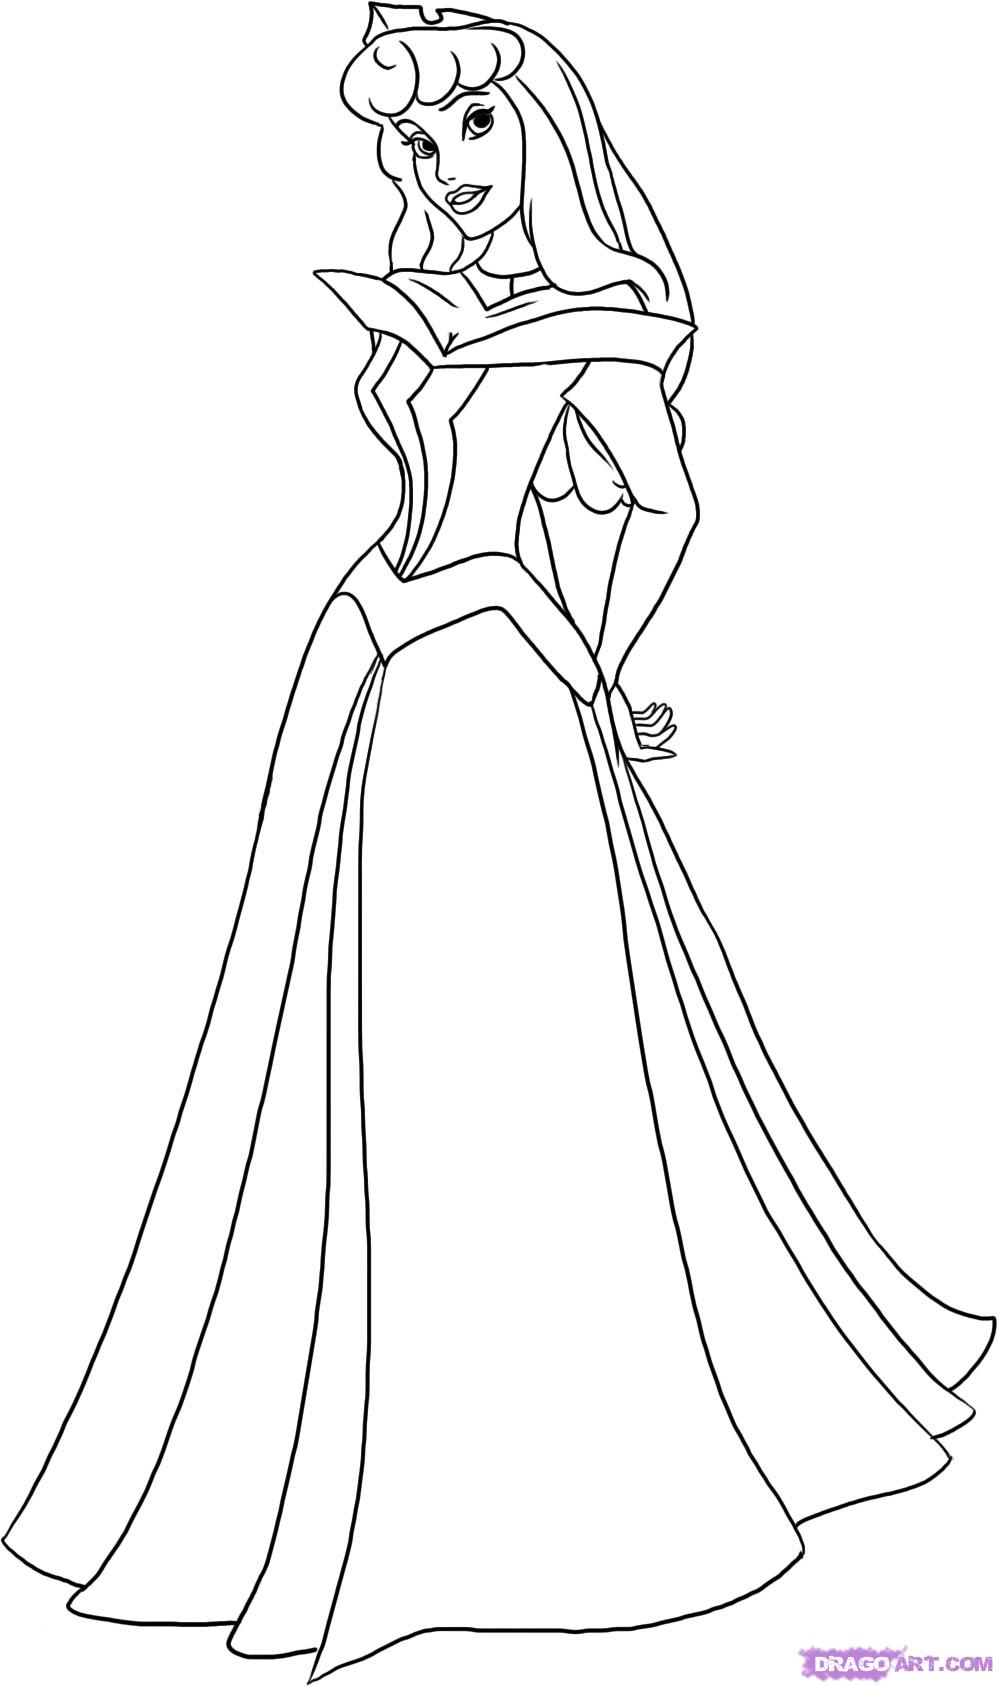 998x1686 Princess Aurora Coloring Page Inspirations Within Pages